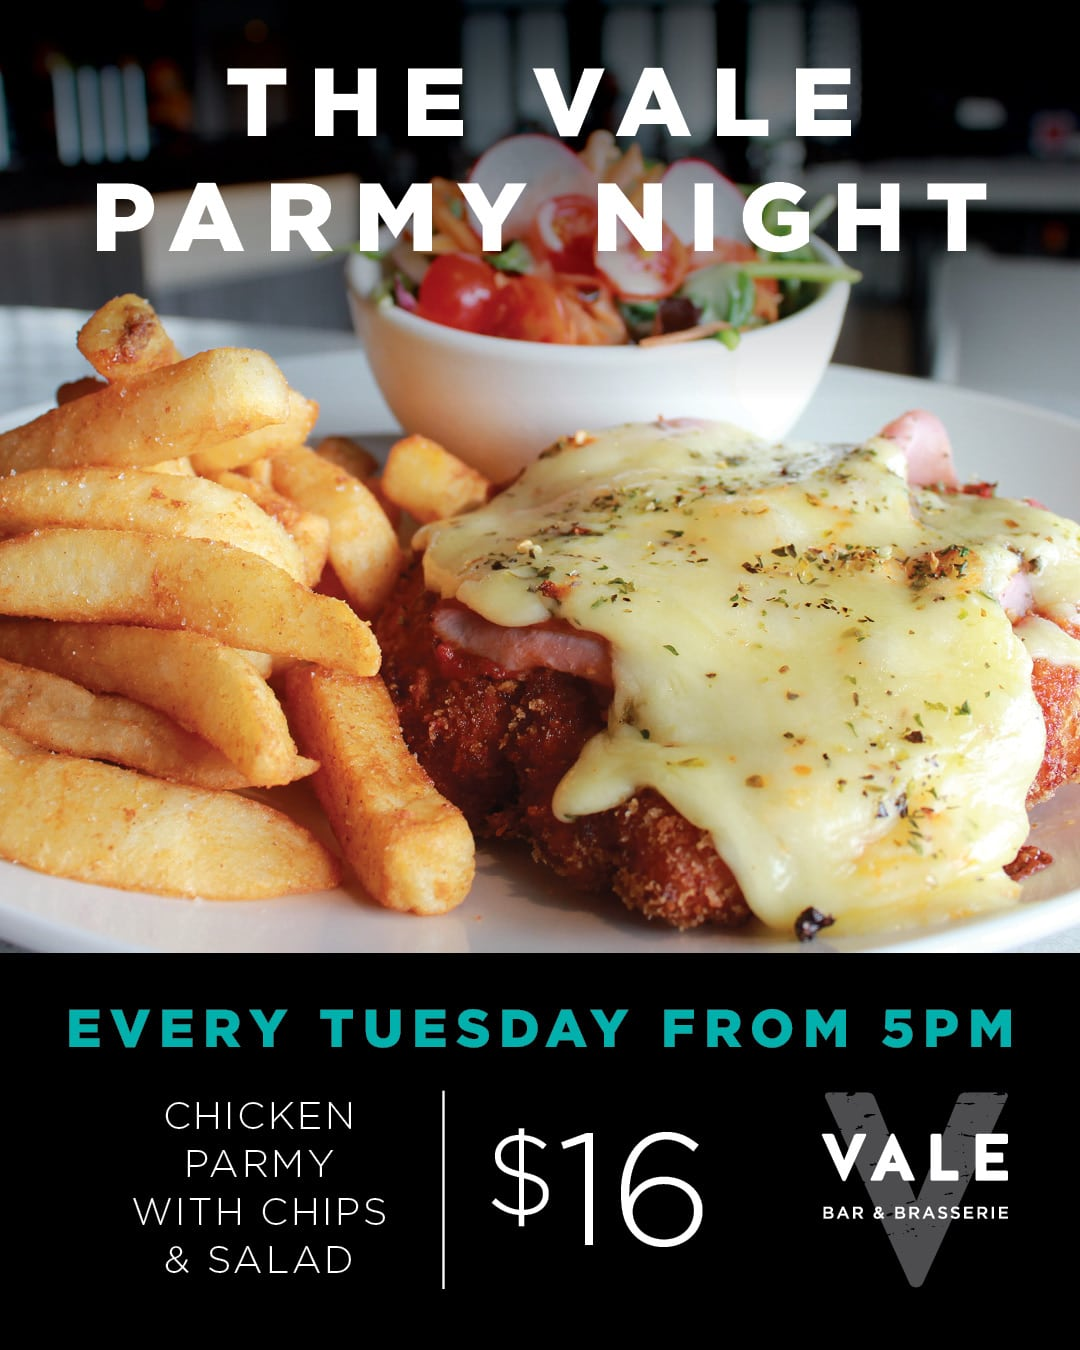 Tuesday Parmy Night